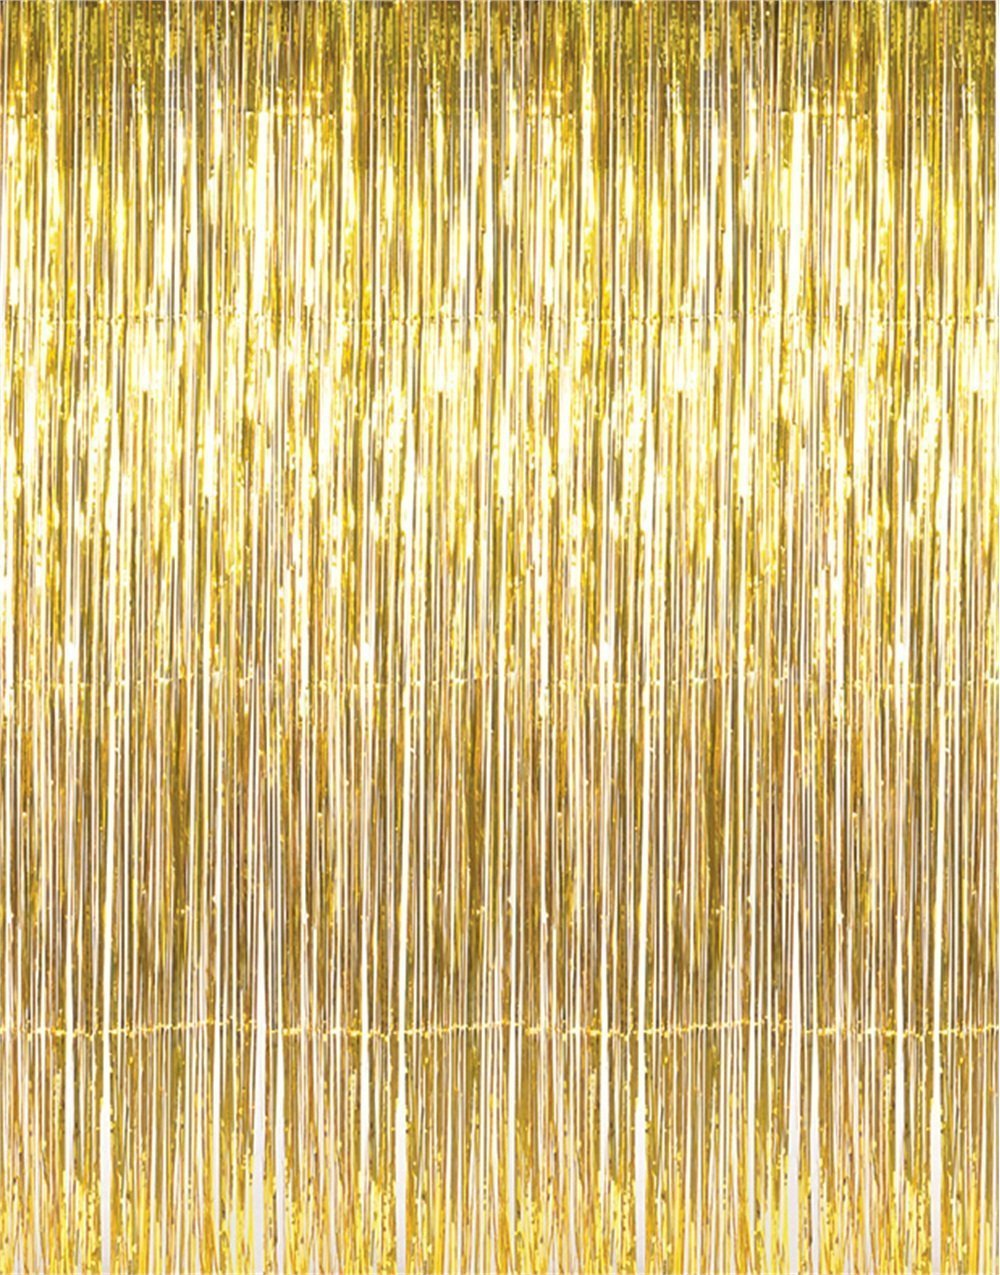 GOER 3.2 ft x 9.8 ft Metallic Tinsel Foil Fringe Curtains Party Photo Backdrop Wedding Decor (2 Packs, Gold) by GOER